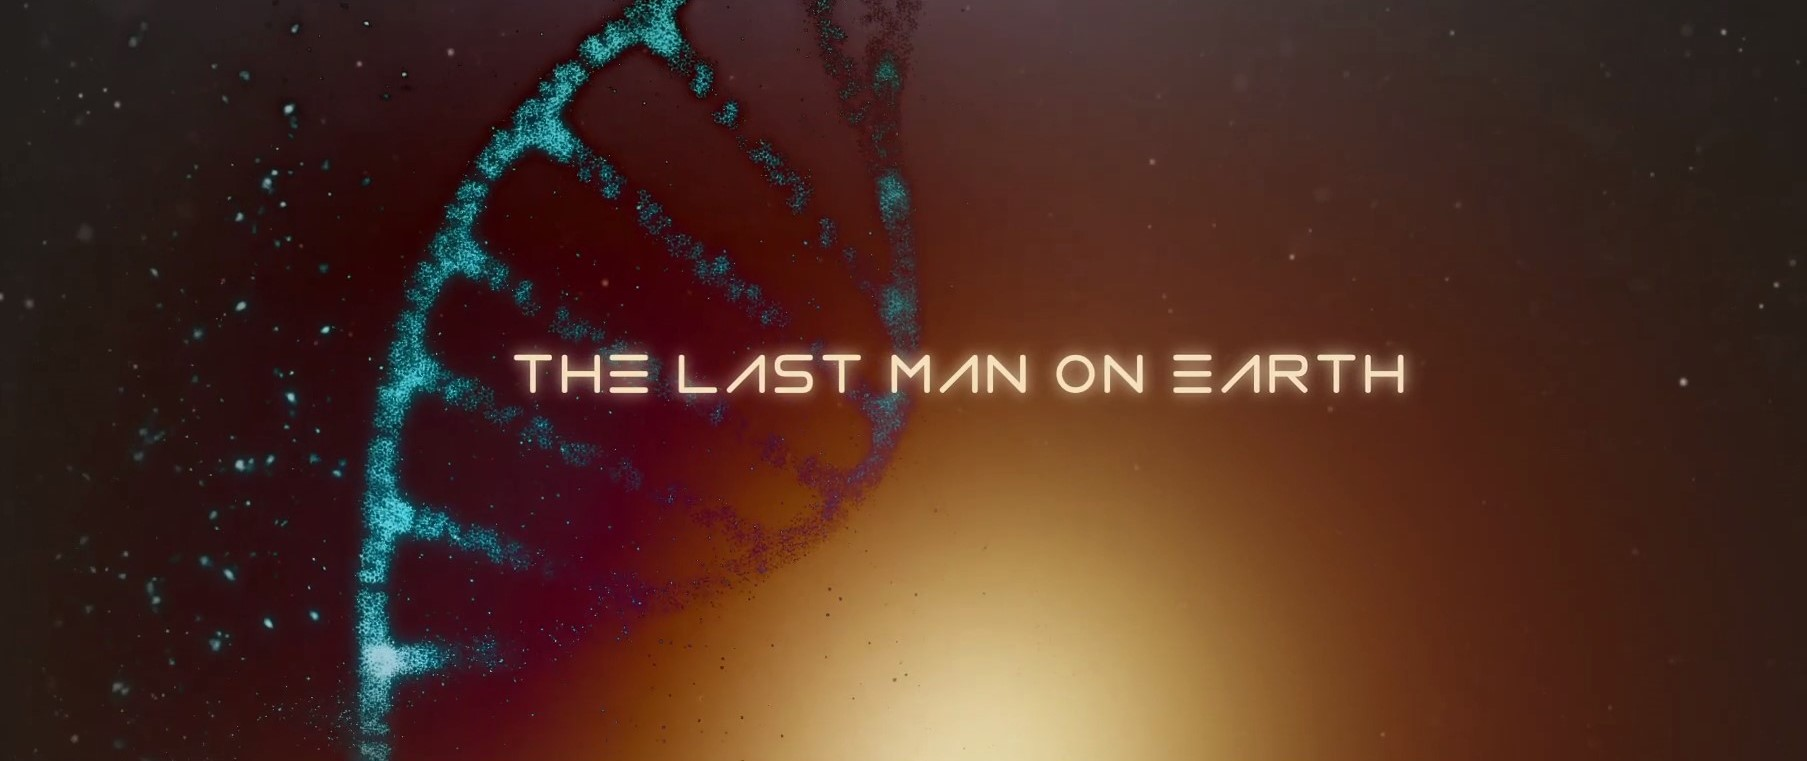 The Last Man on Earth Title.jpg